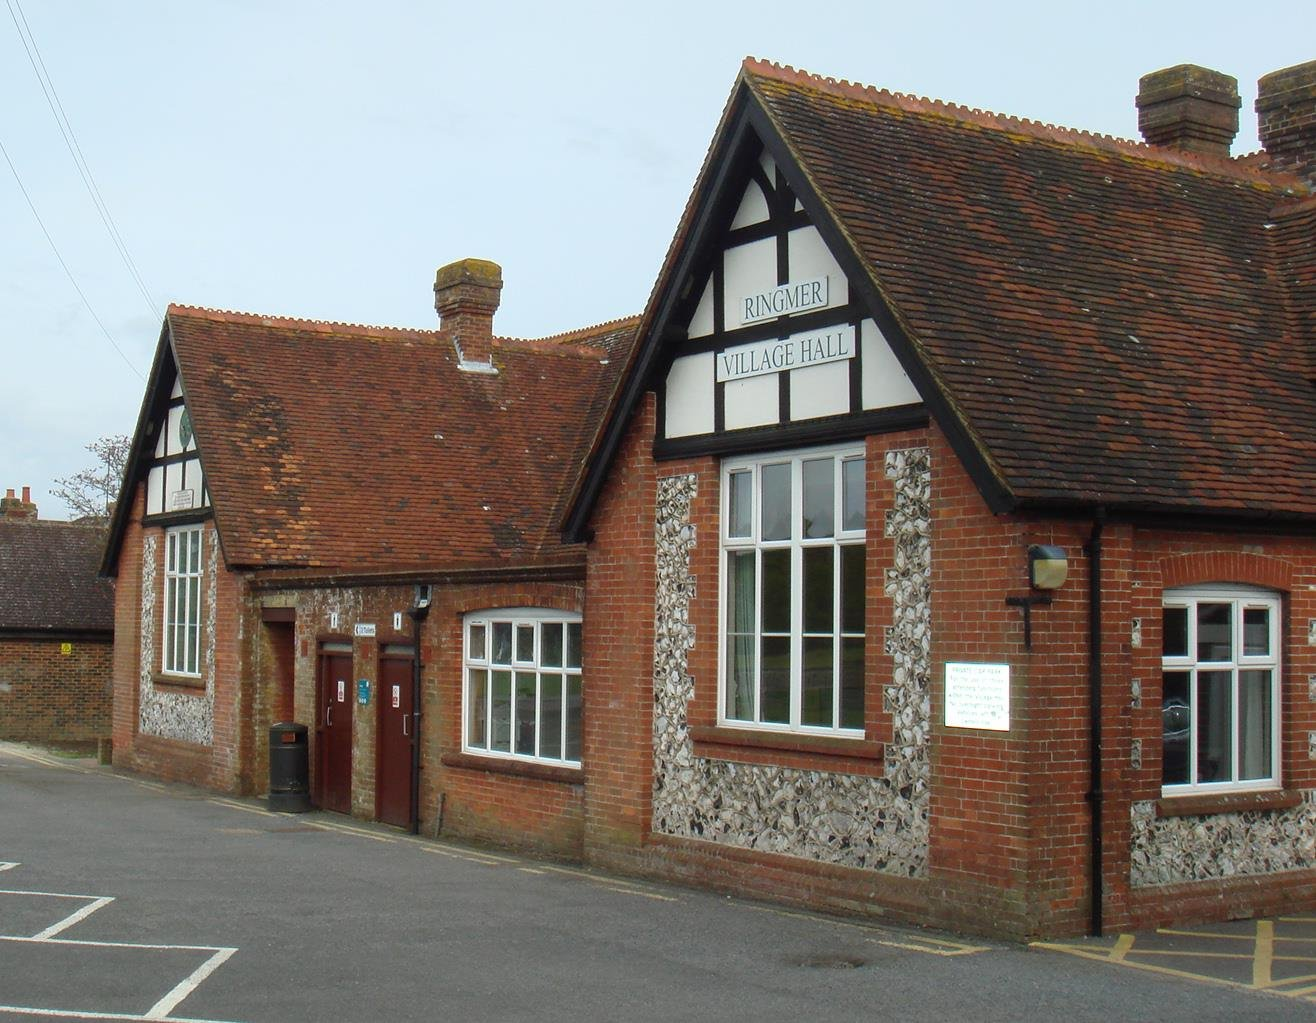 Ringmer village hall